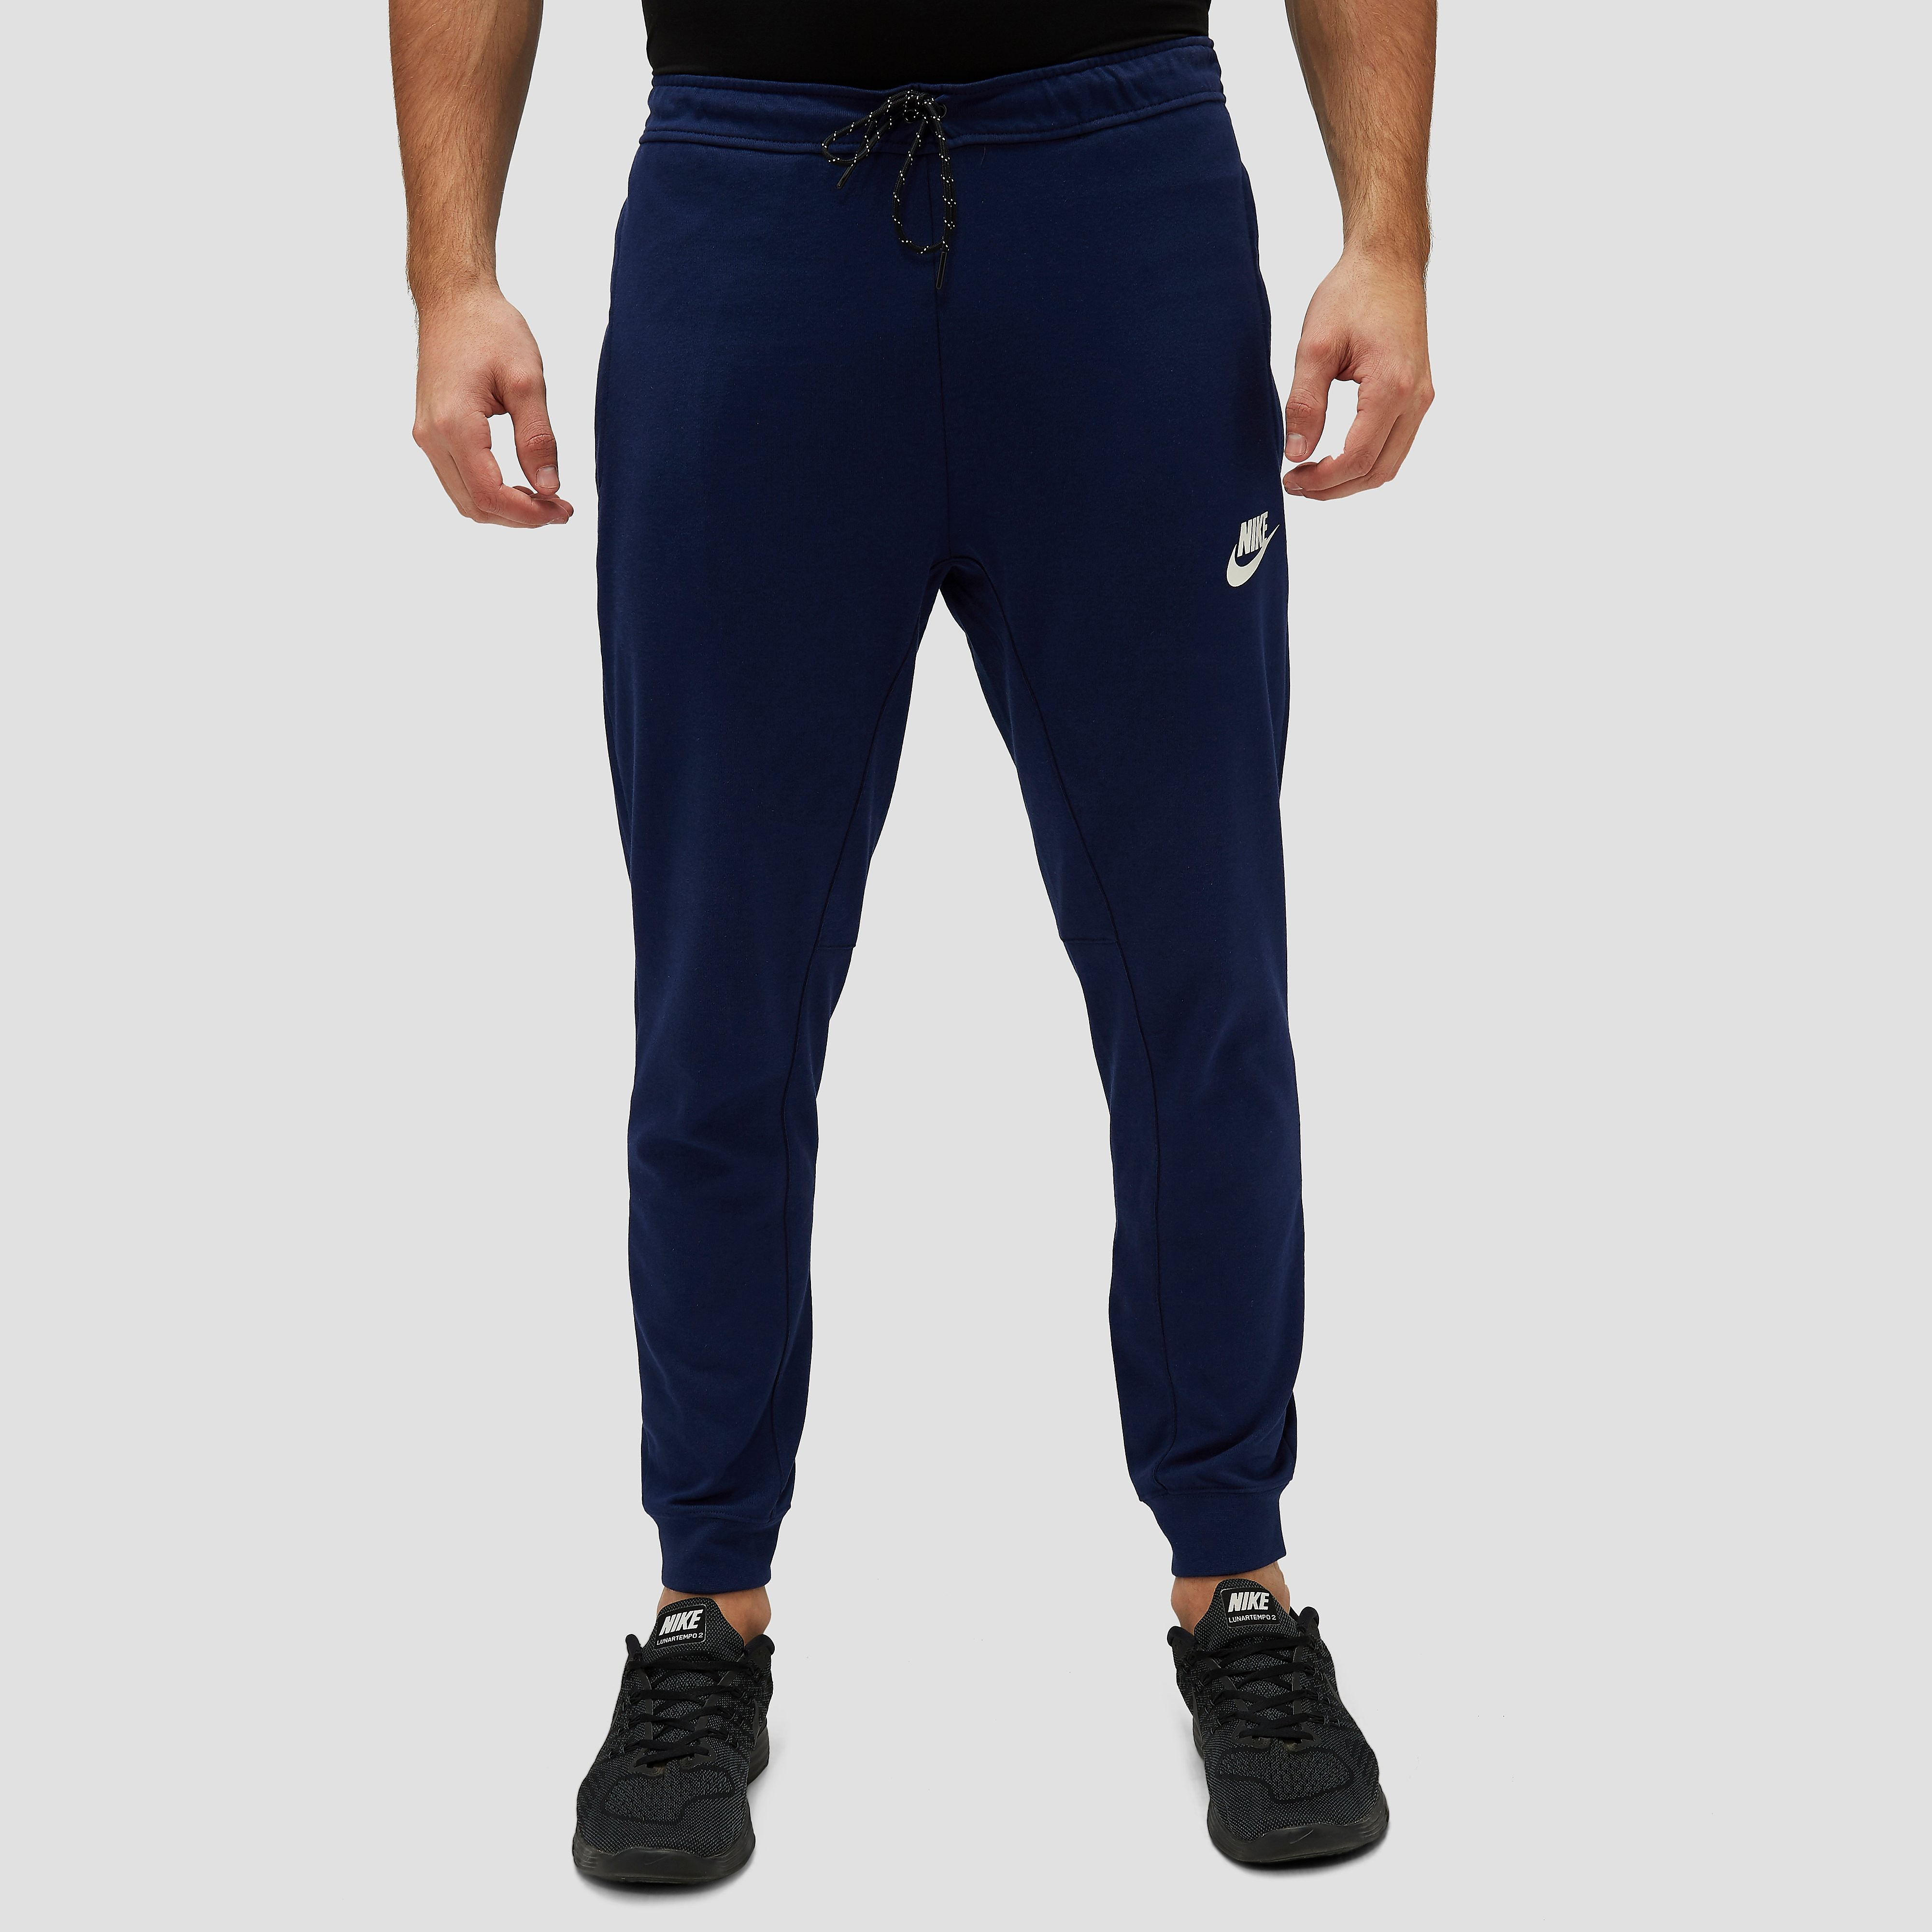 NIKE AV15 FLEECE JOGGINGBROEK BLAUW HEREN